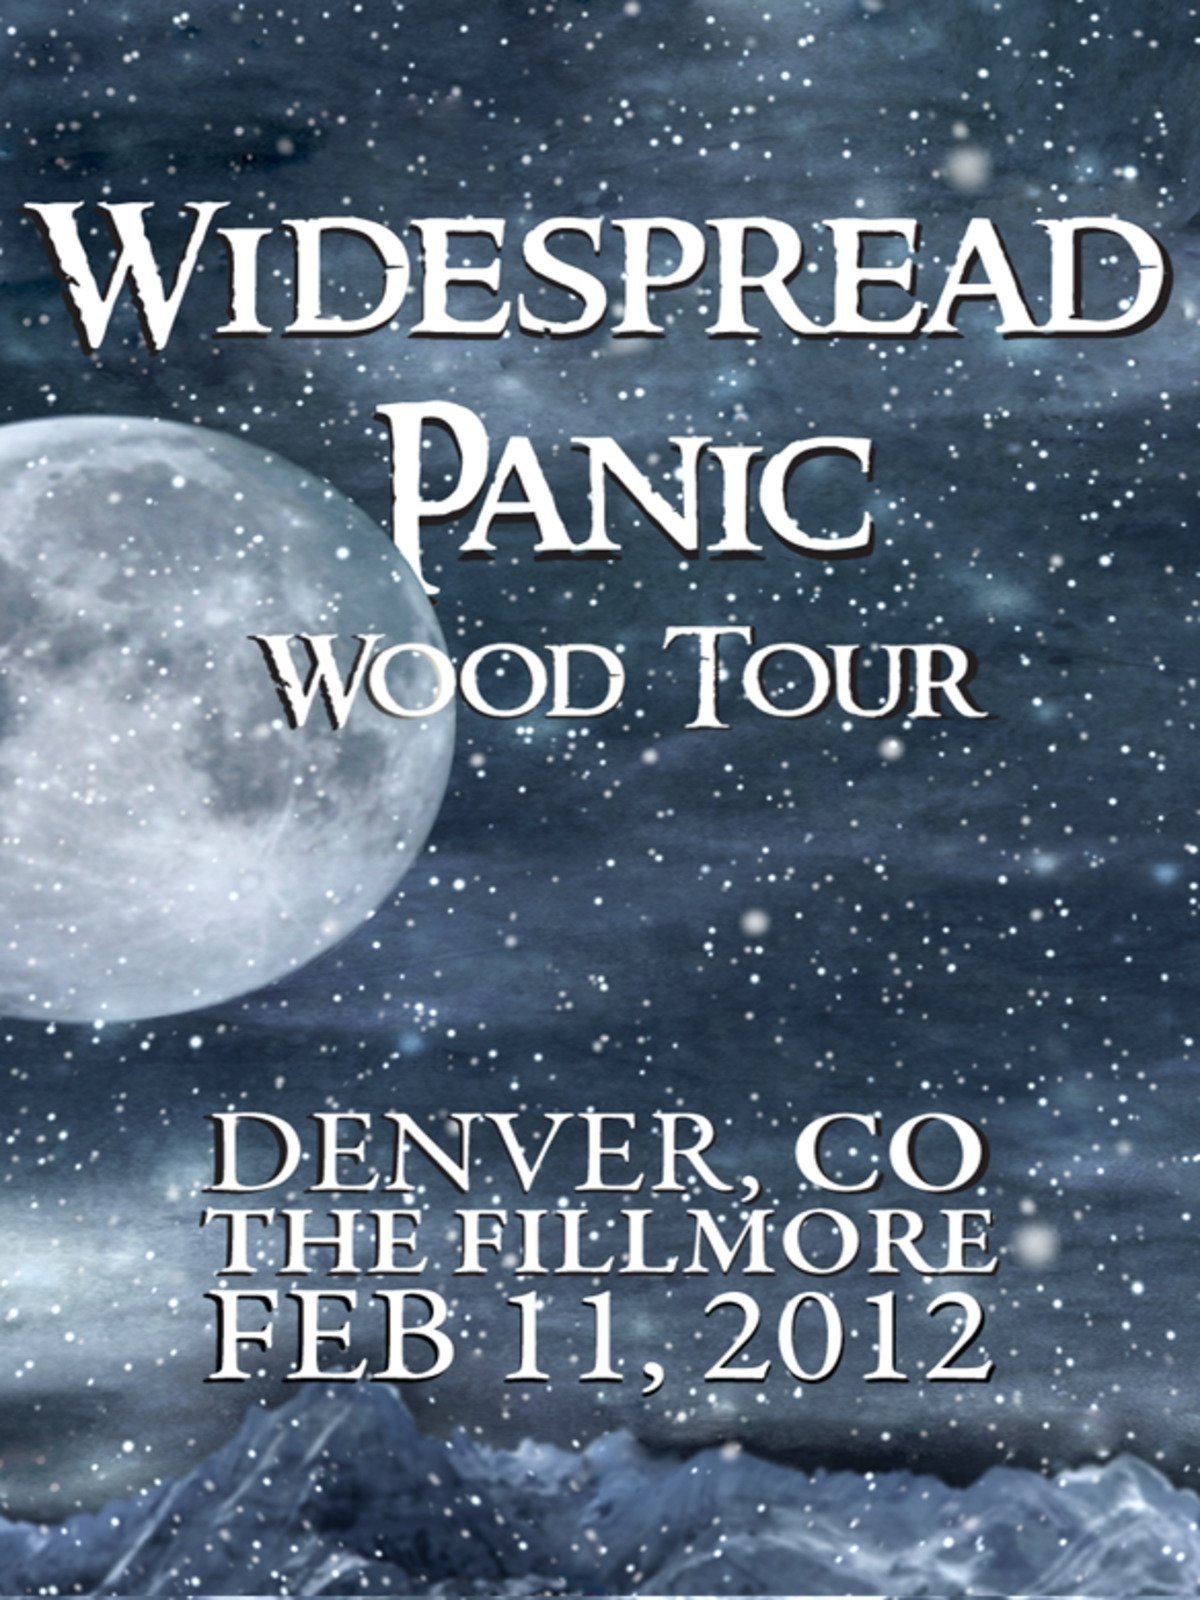 Widespread Panic: Wood Tour - Denver, CO The Fillmore February 11, 2012 on Amazon Prime Instant Video UK